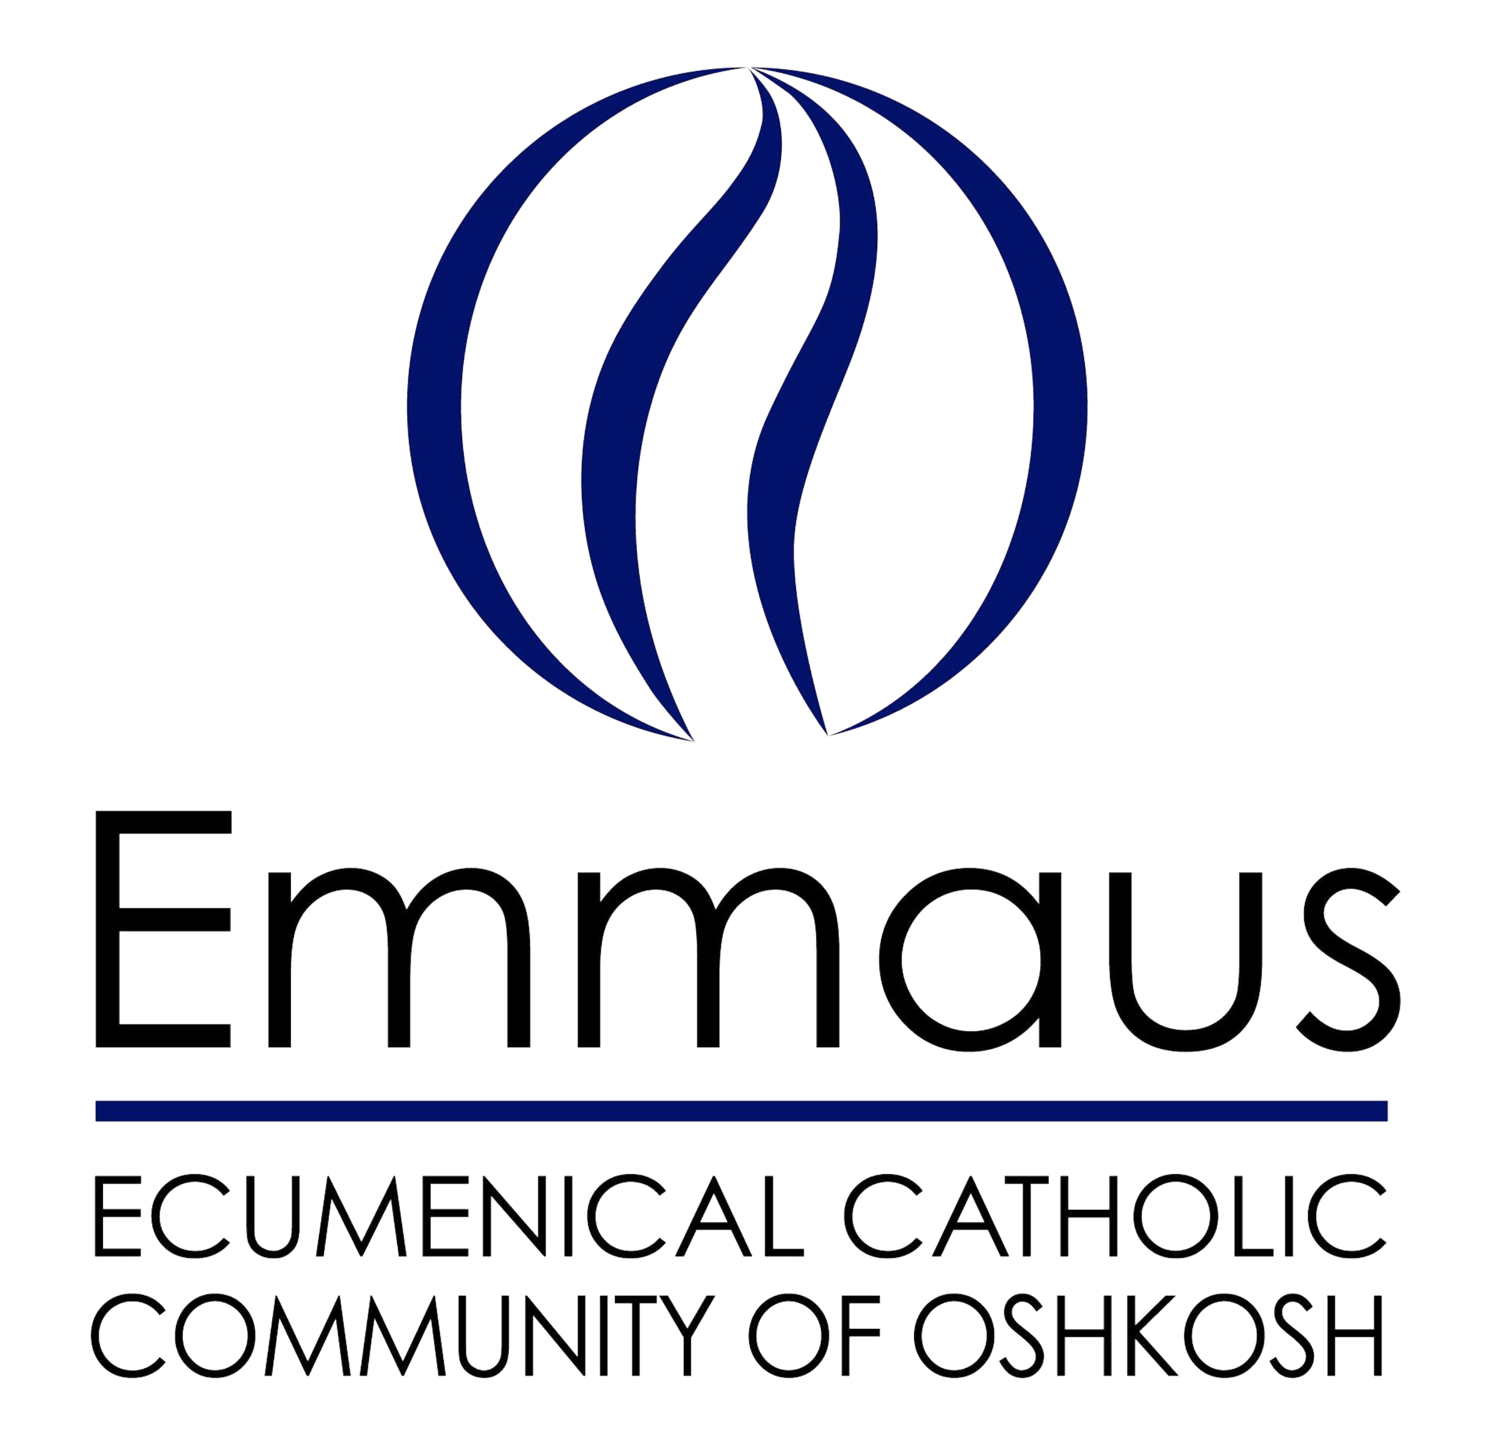 Emmaus Ecumenical Catholic Community of Oshkosh